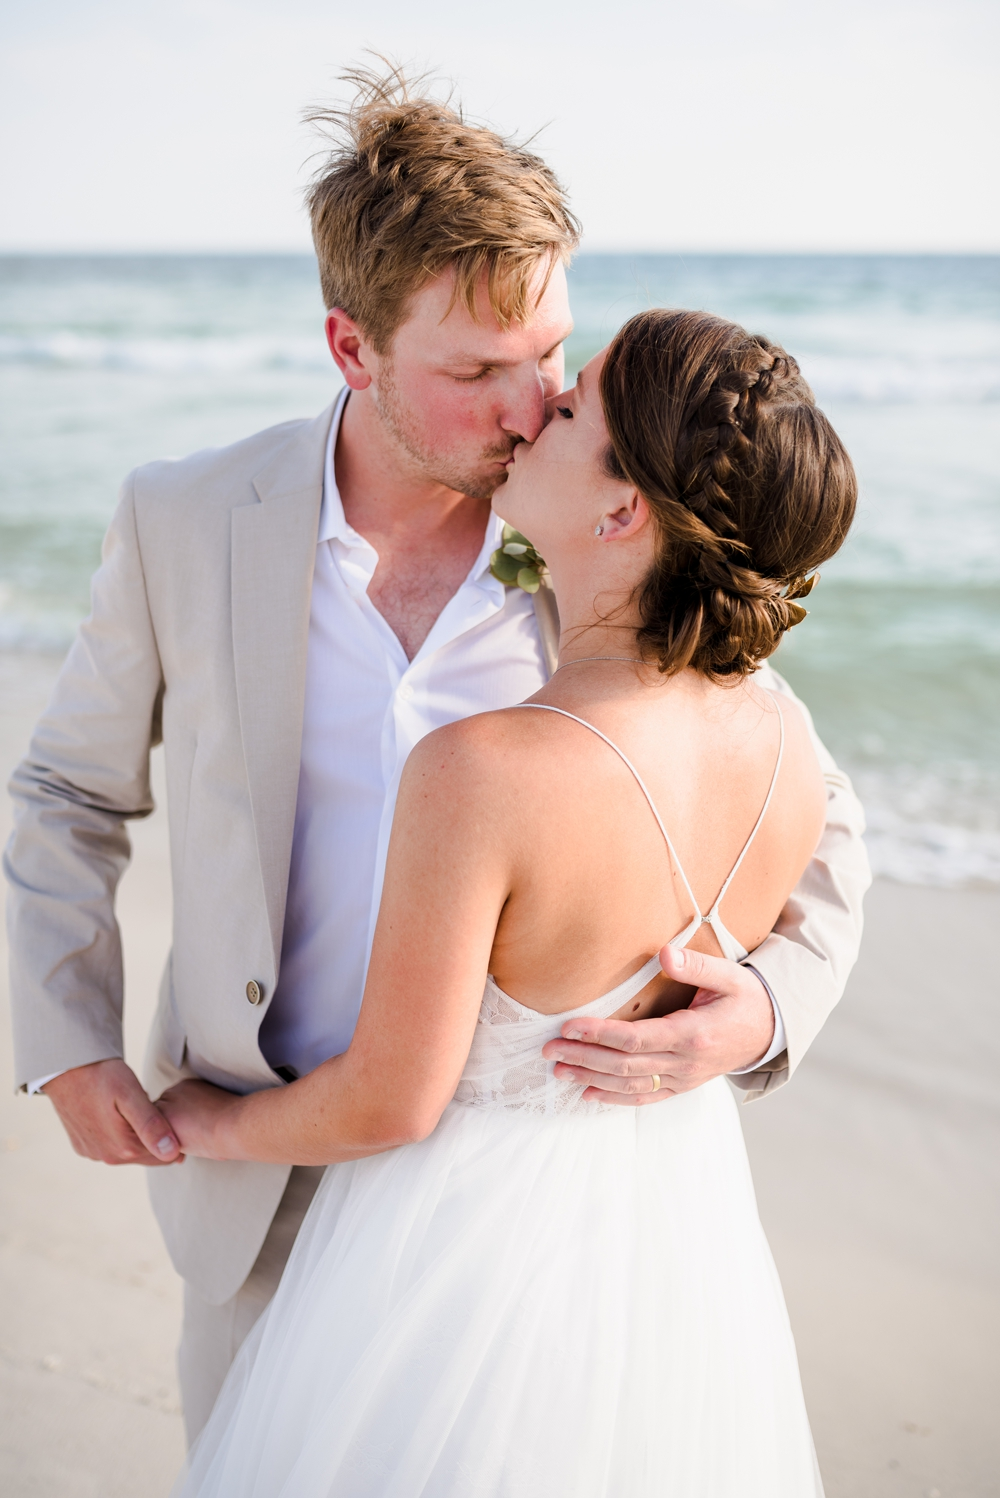 florida-wedding-photographer-kiersten-grant-94.jpg